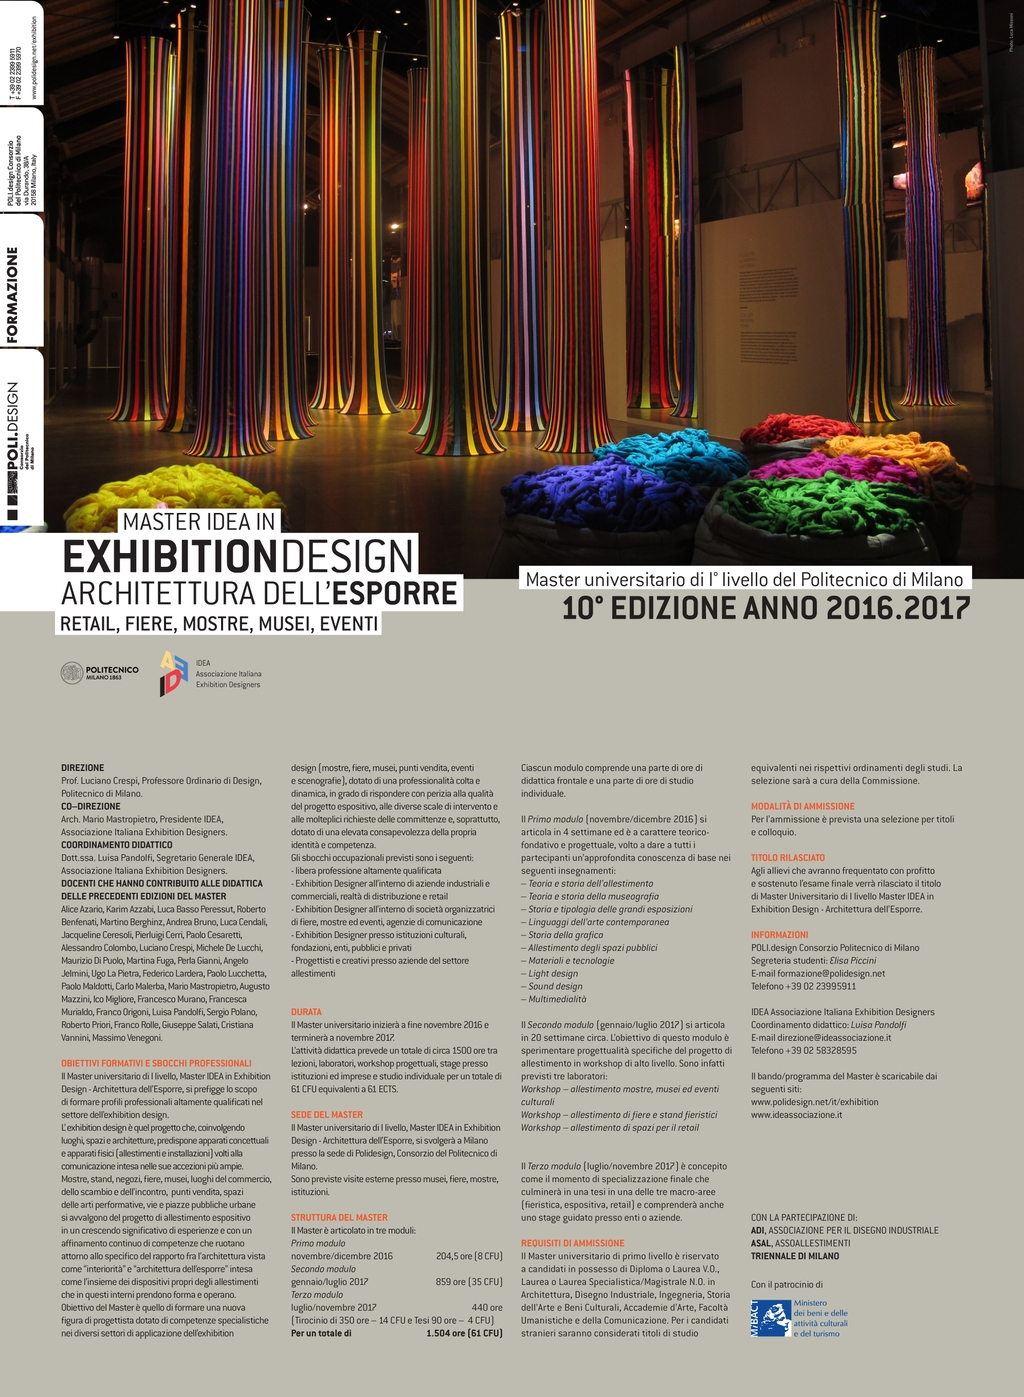 MASTER IDEA IN EXHIBITION DESIGN: AL VIA LA DECIMA EDIZIONE 16/17